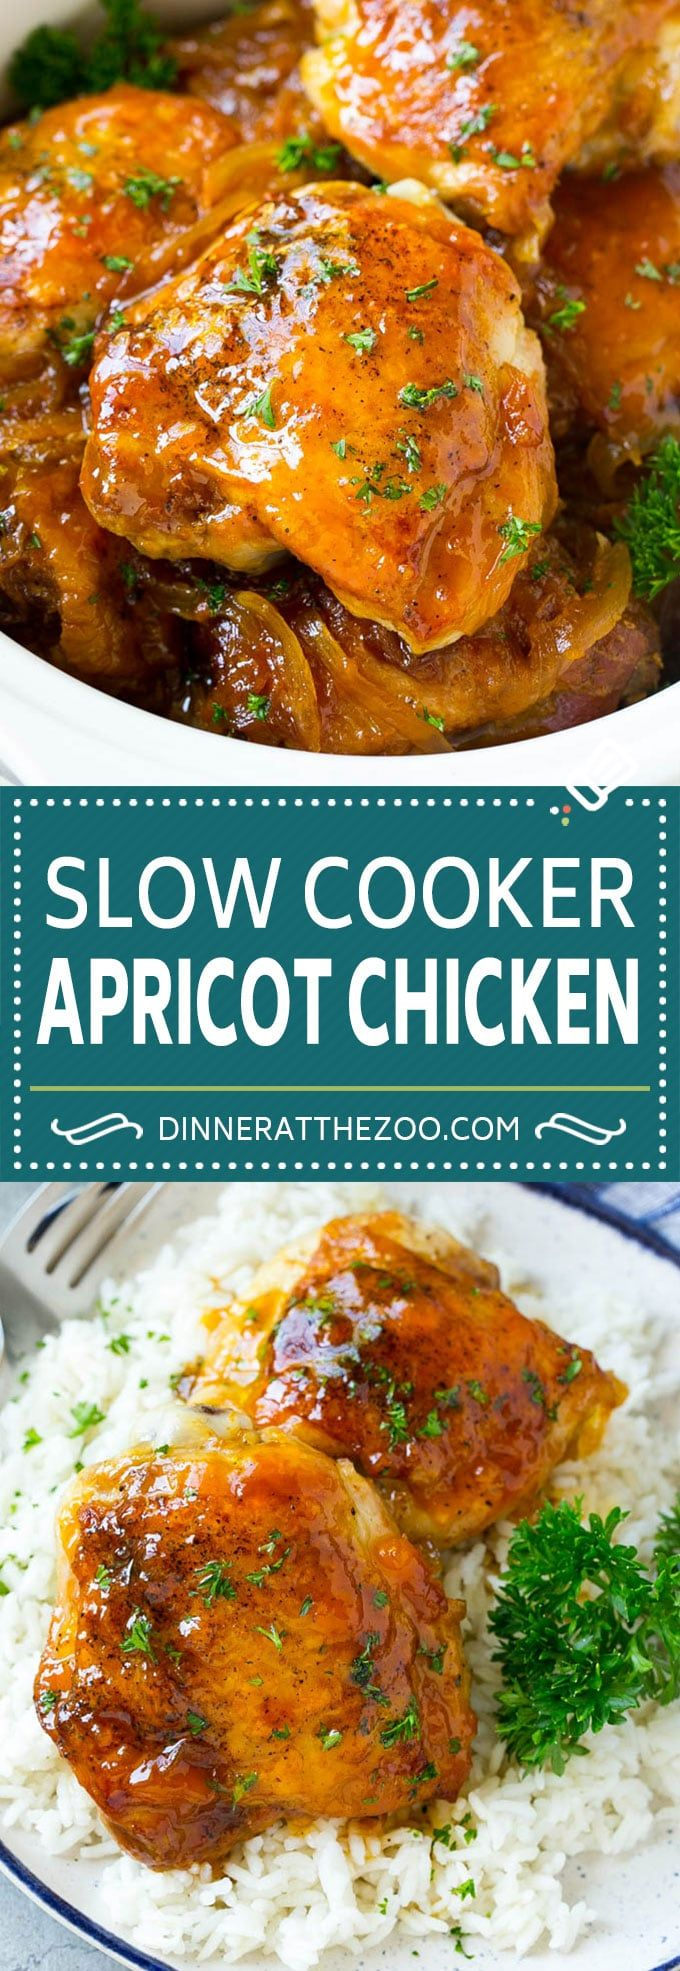 Slow Cooker Apricot Chicken - Dinner at the Zoo